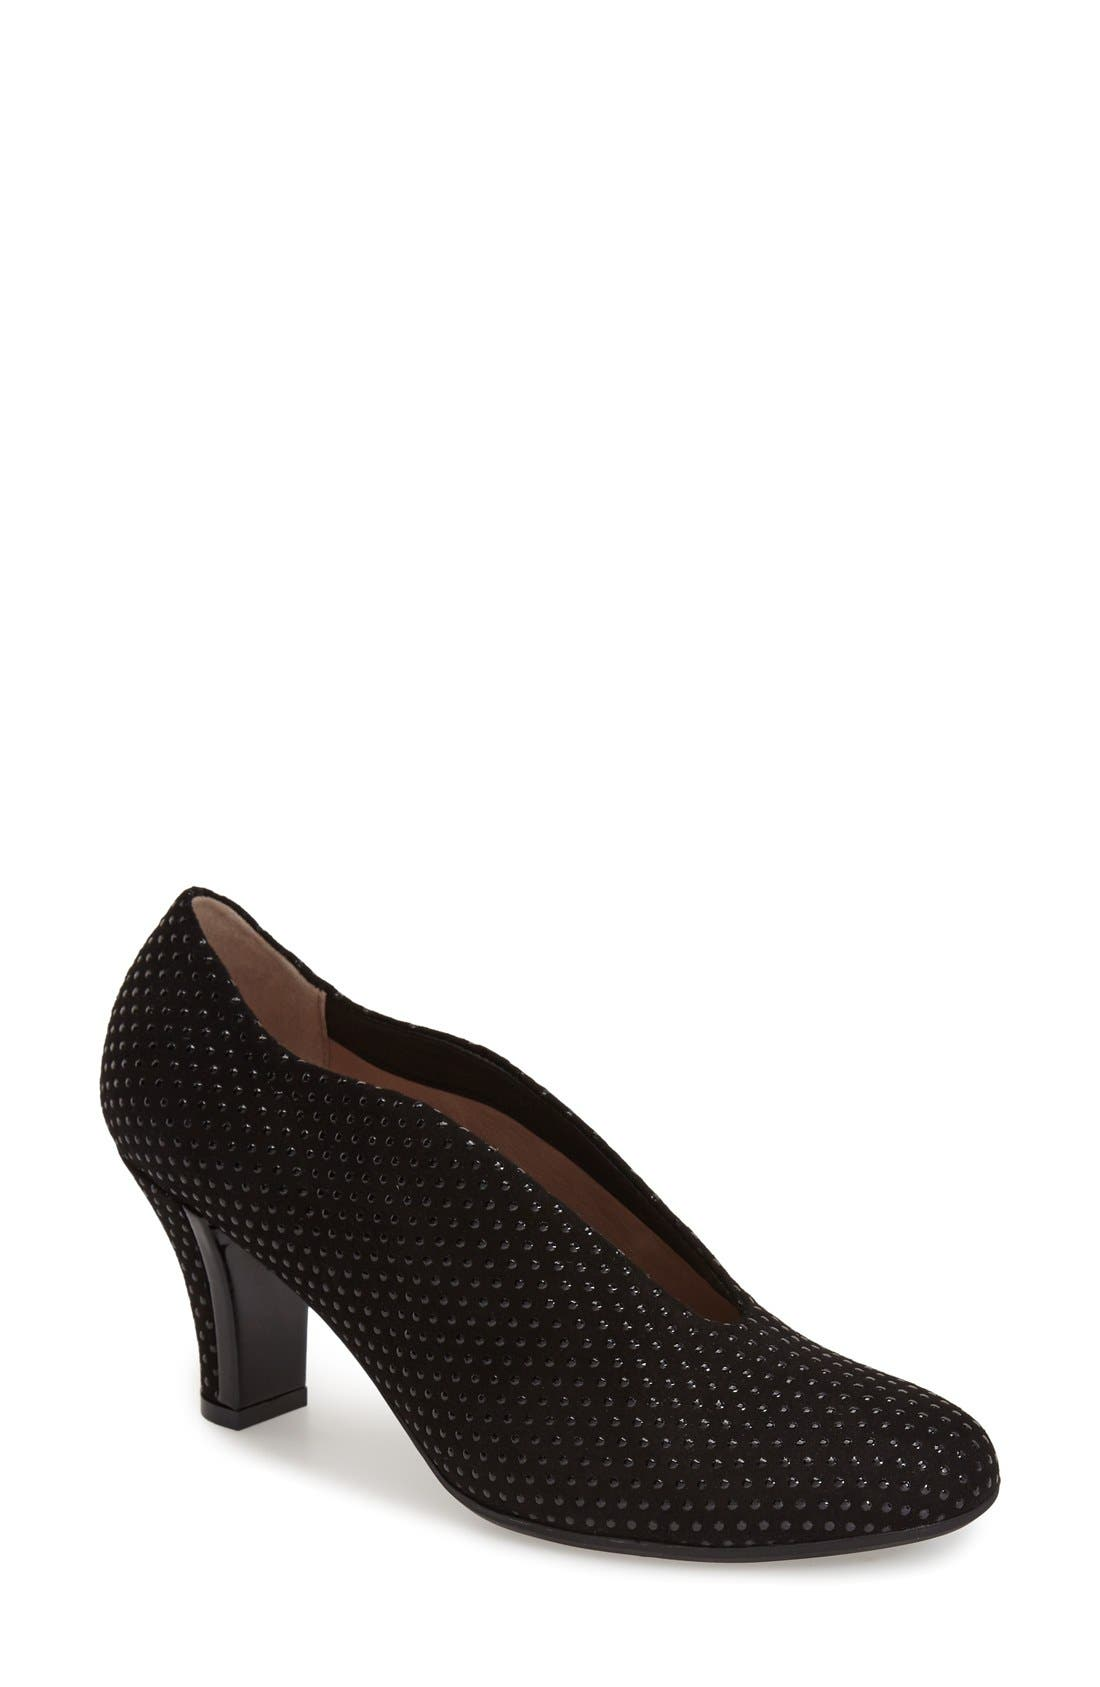 'Calla' Pump,                         Main,                         color, 001